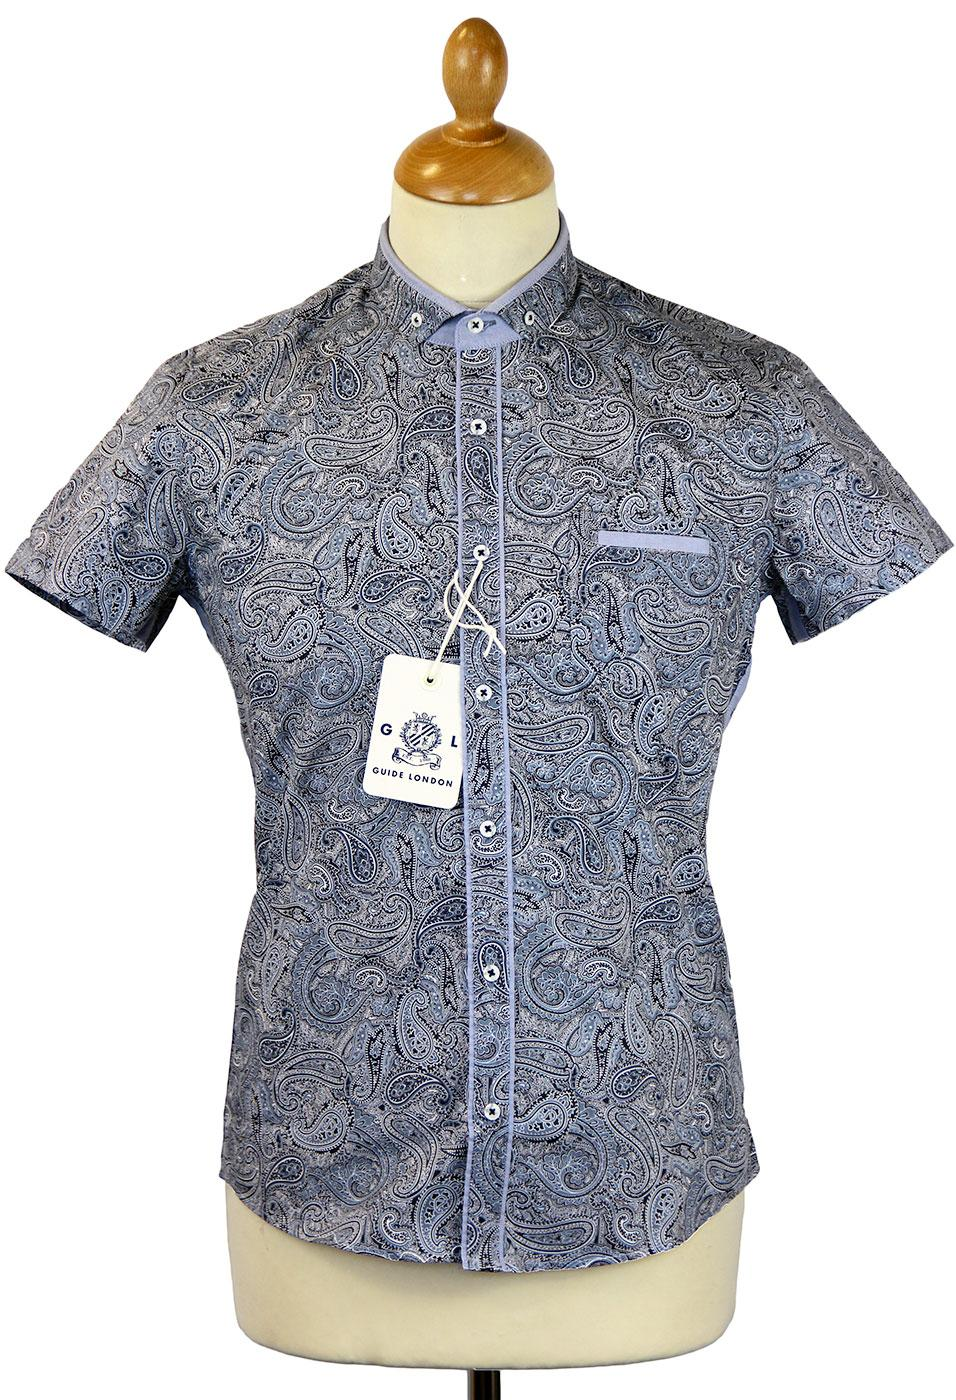 Paisley S/S GUIDE LONDON Retro Mod Casual Shirt